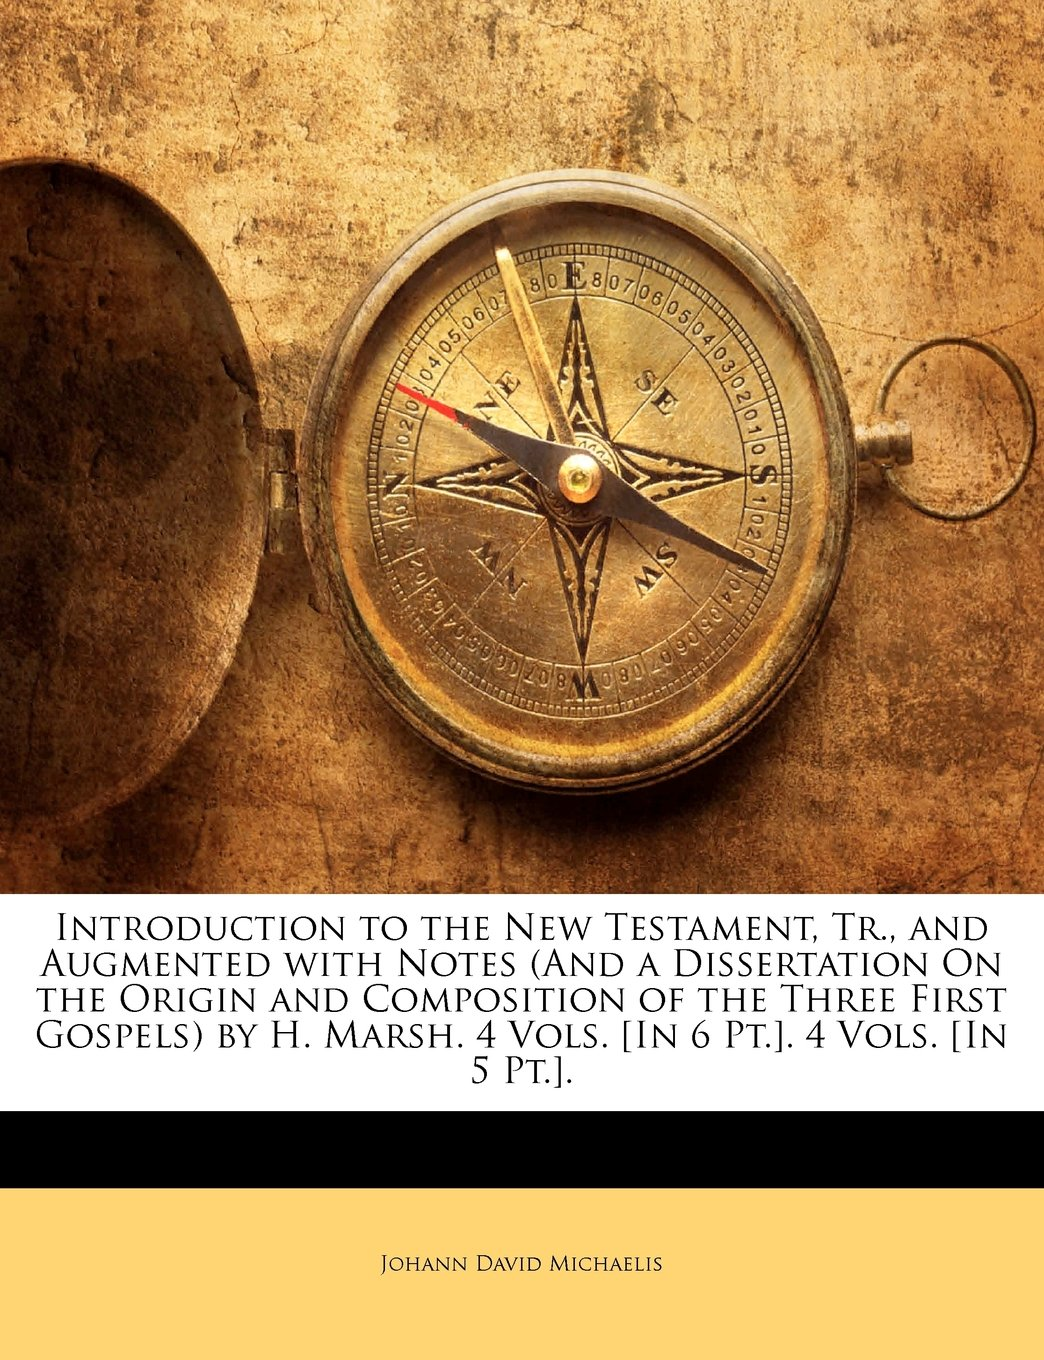 Introduction to the New Testament, Tr., and Augmented with Notes (And a Dissertation On the Origin and Composition of the Three First Gospels) by H. Marsh. 4 Vols. [In 6 Pt.]. 4 Vols. [In 5 Pt.]. ebook